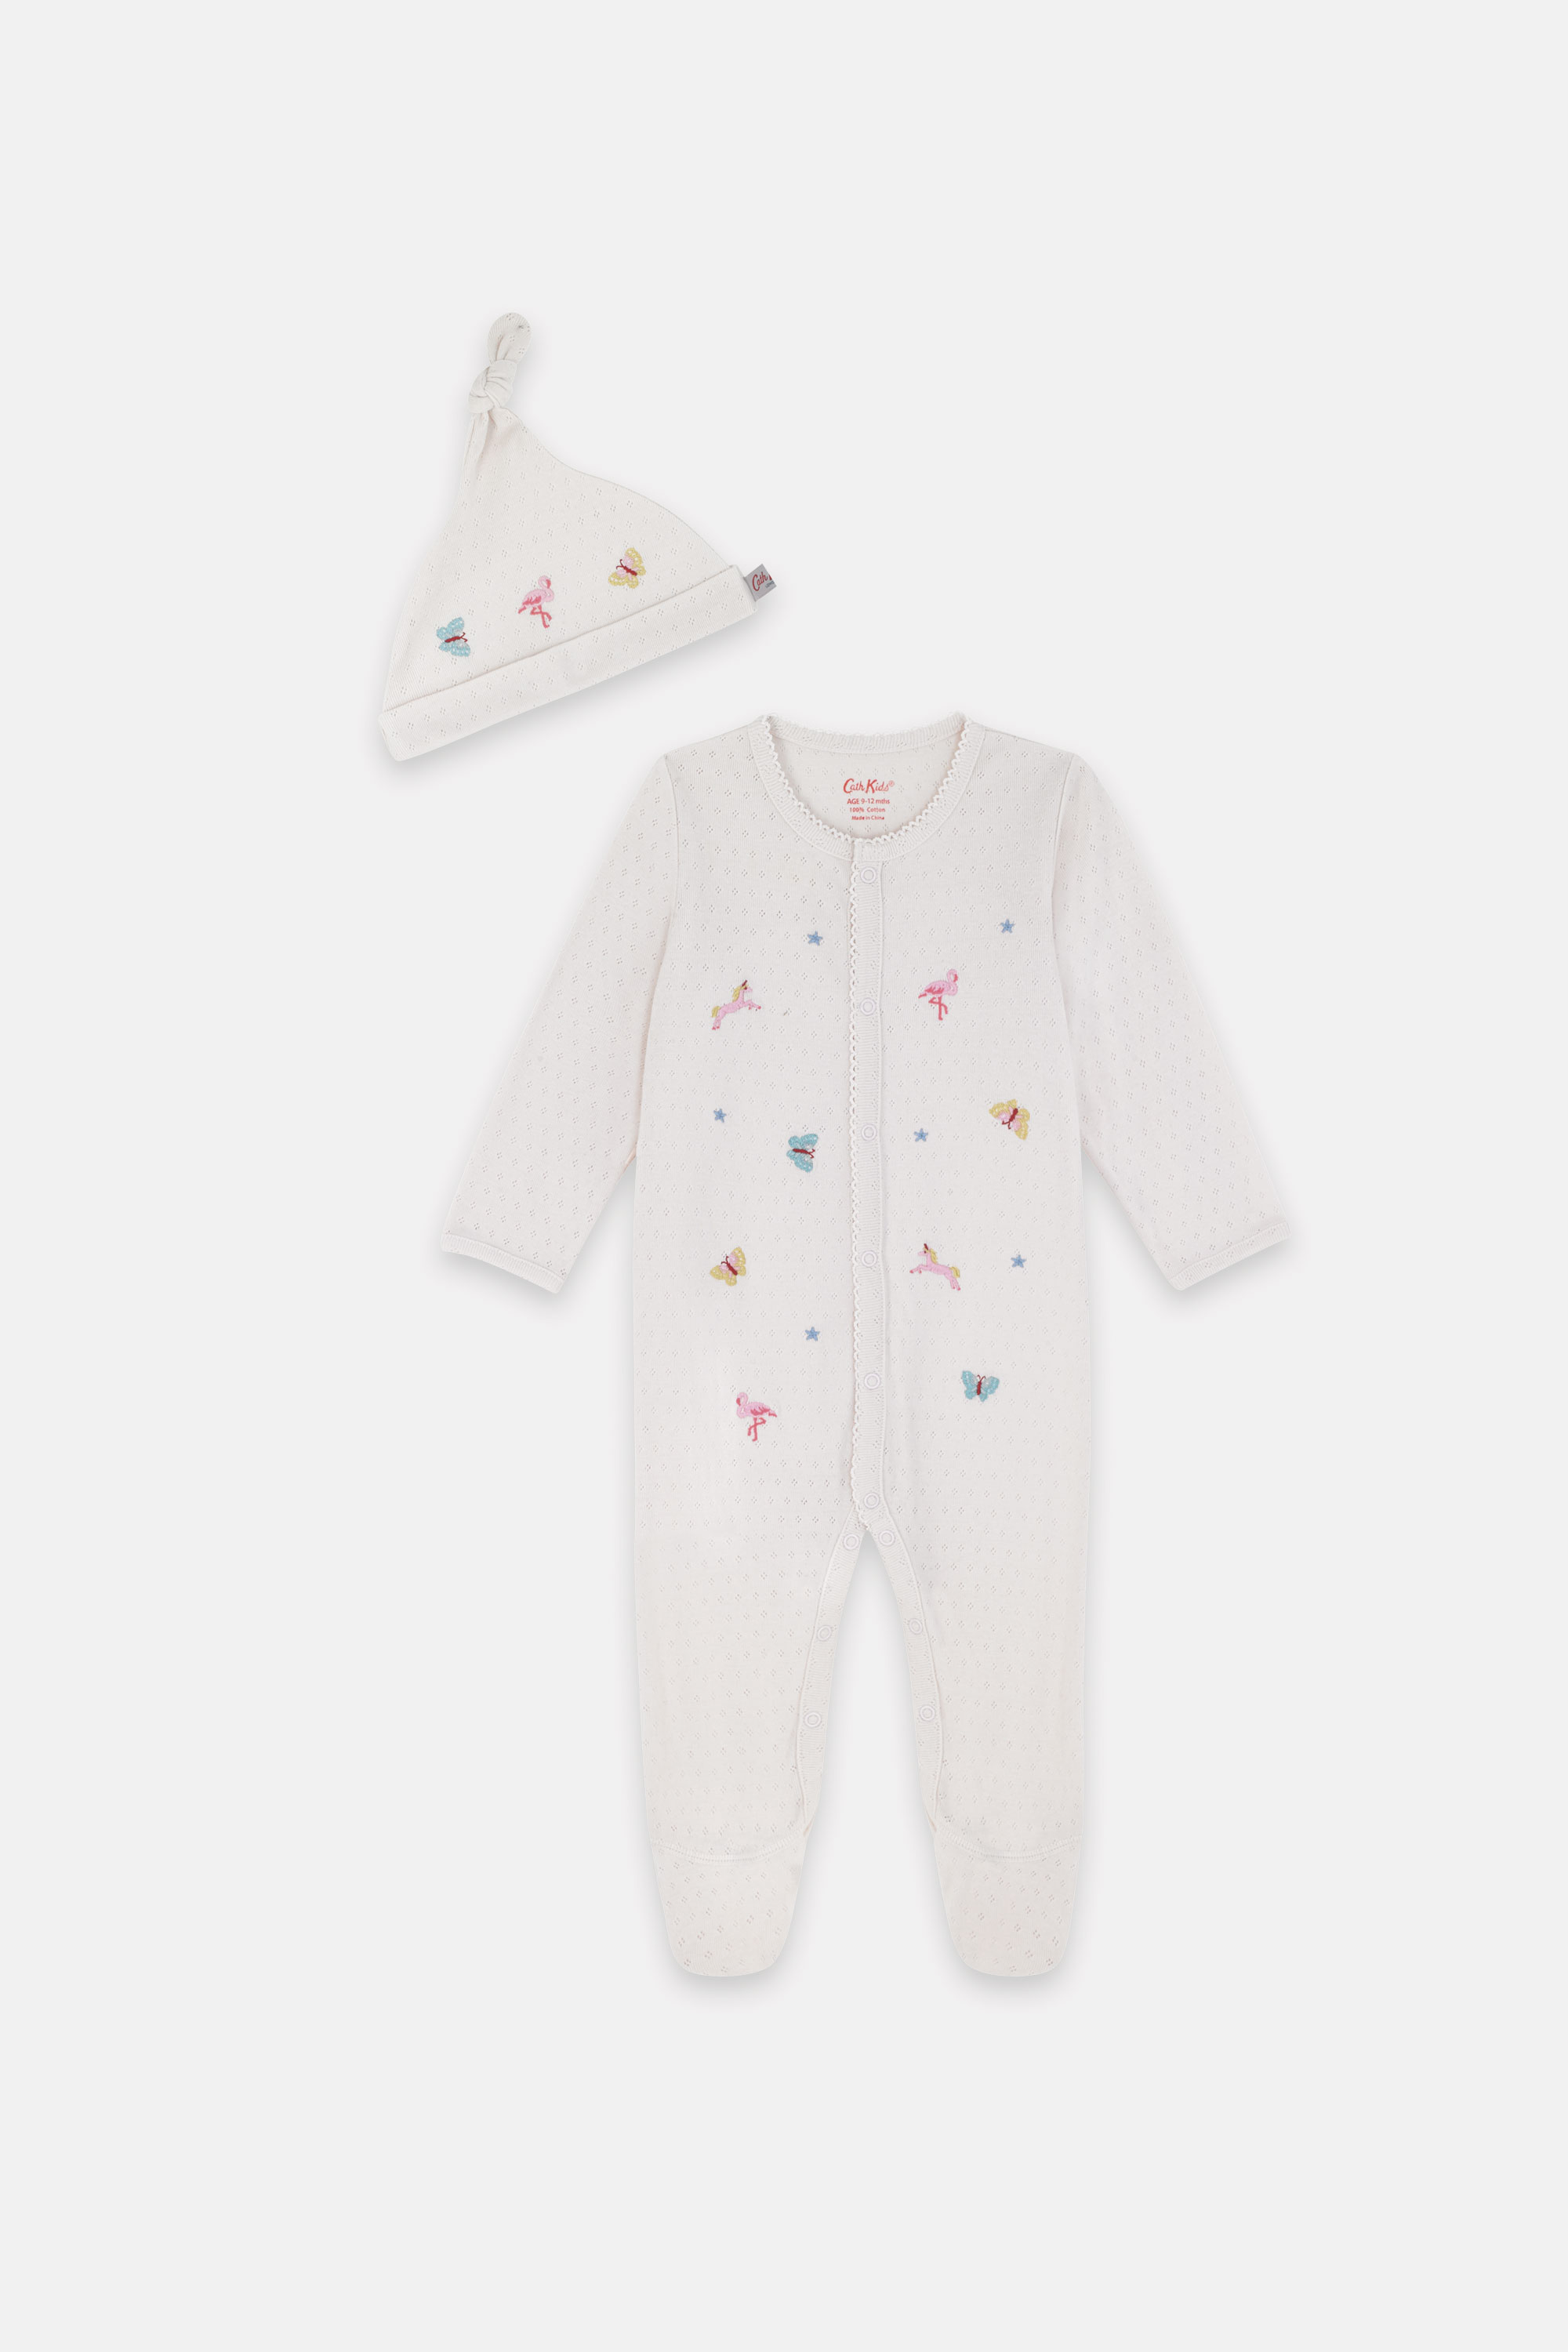 Cath Kidston Fantasy Forest Bodysuit and Hat Set in Blush, 9-12 Mo